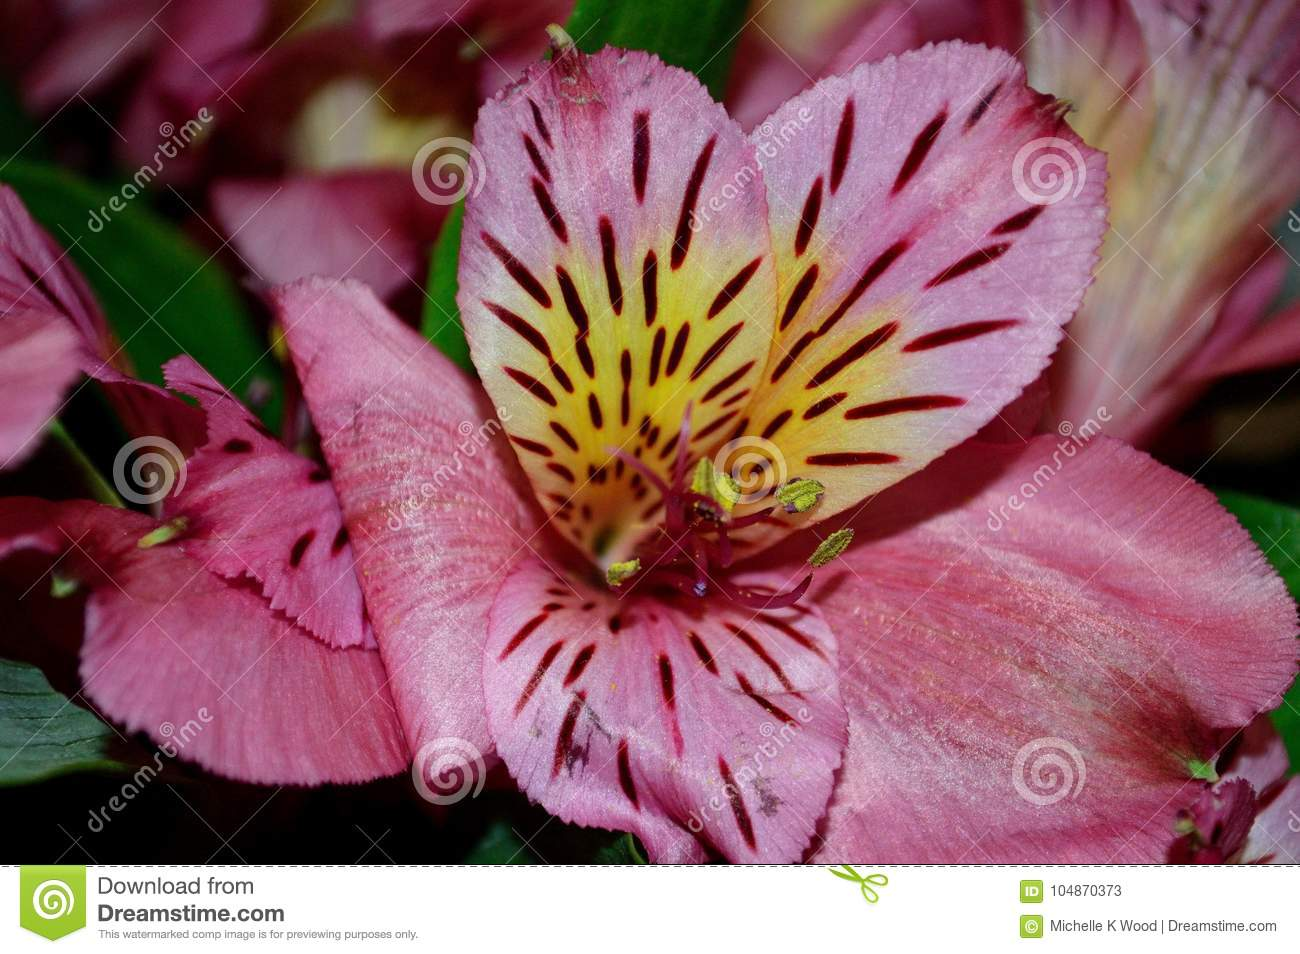 SIngle Pink Day Lily Blossom